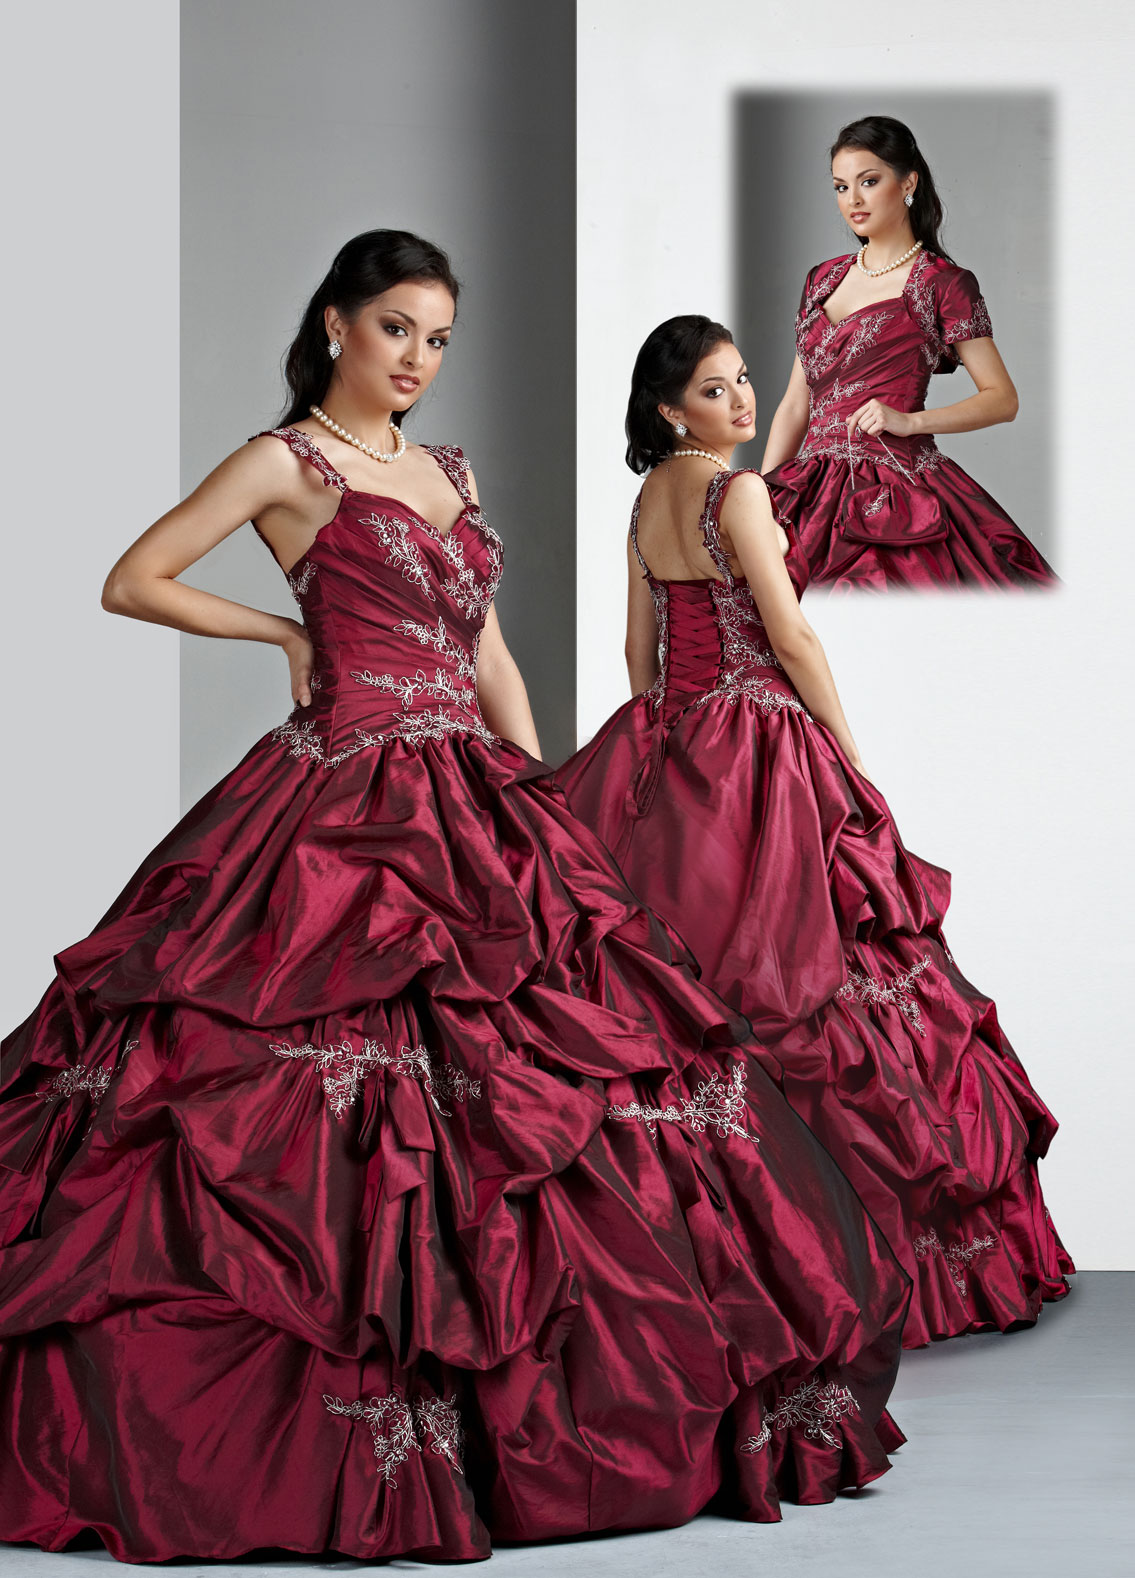 5993ba1b7c6 Strap And Sweetheart Lace Up Floor Length Burgundy Ball Gown Quinceanera  Dresses With Embroidery And Ruffles